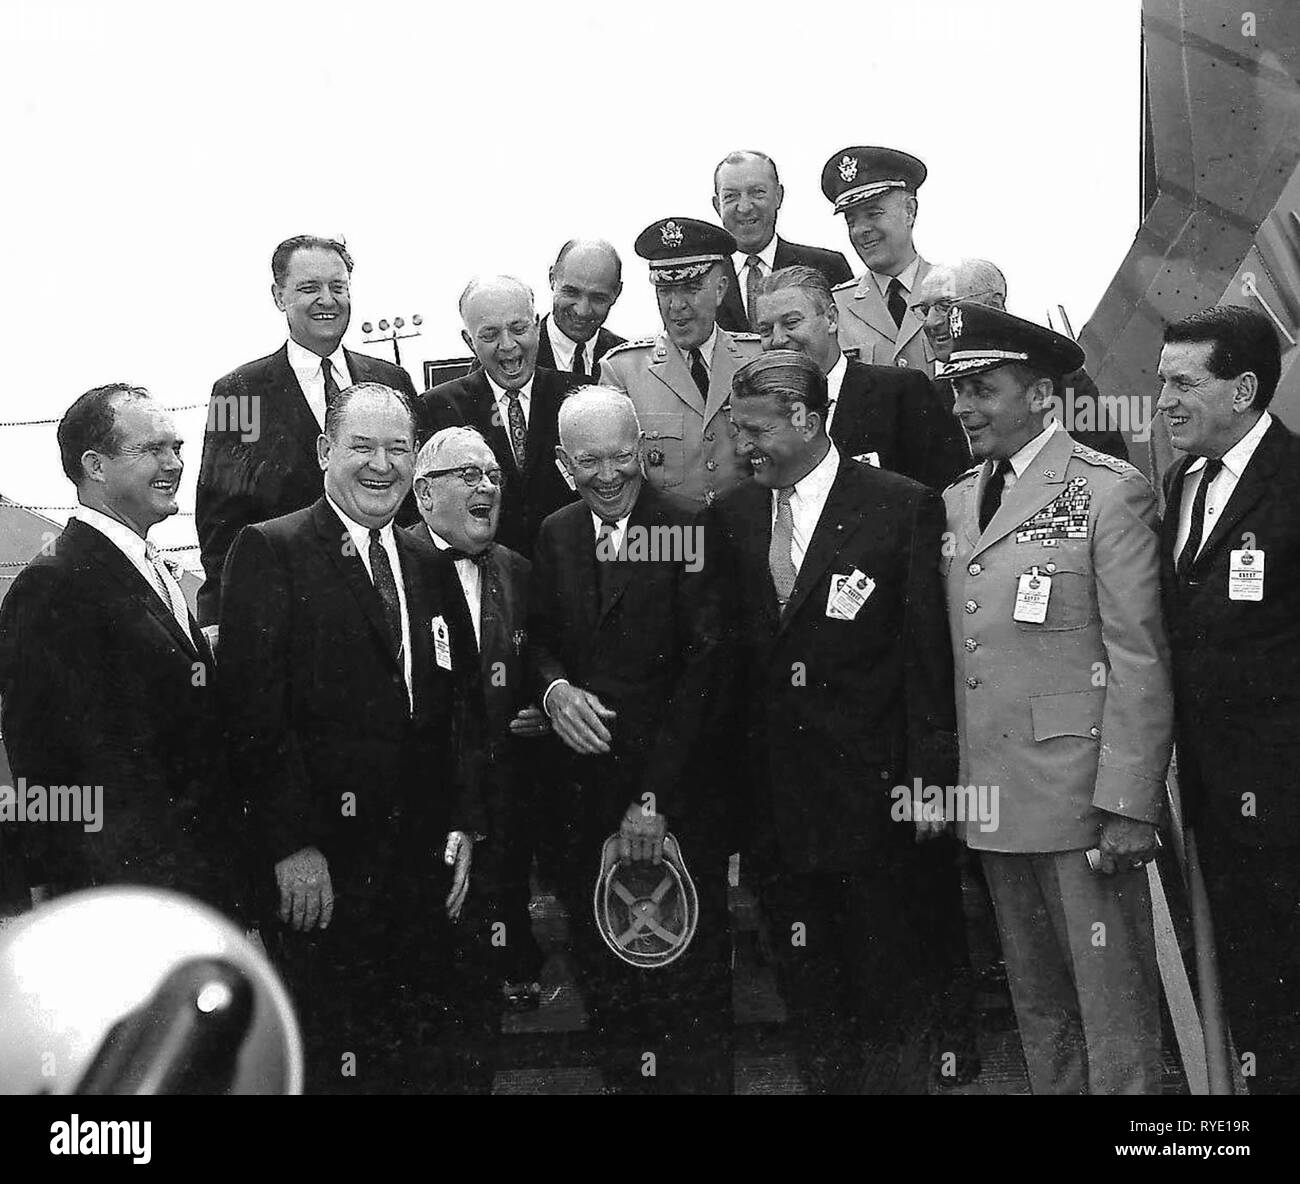 President Dwight D. Eisenhower and MSFC Director Dr. Wernher von Braun share a joke as other dignitaries look on. Eisenhower was visiting Marshall to participate in the September 8, 1960 dedication ceremony. - Stock Image